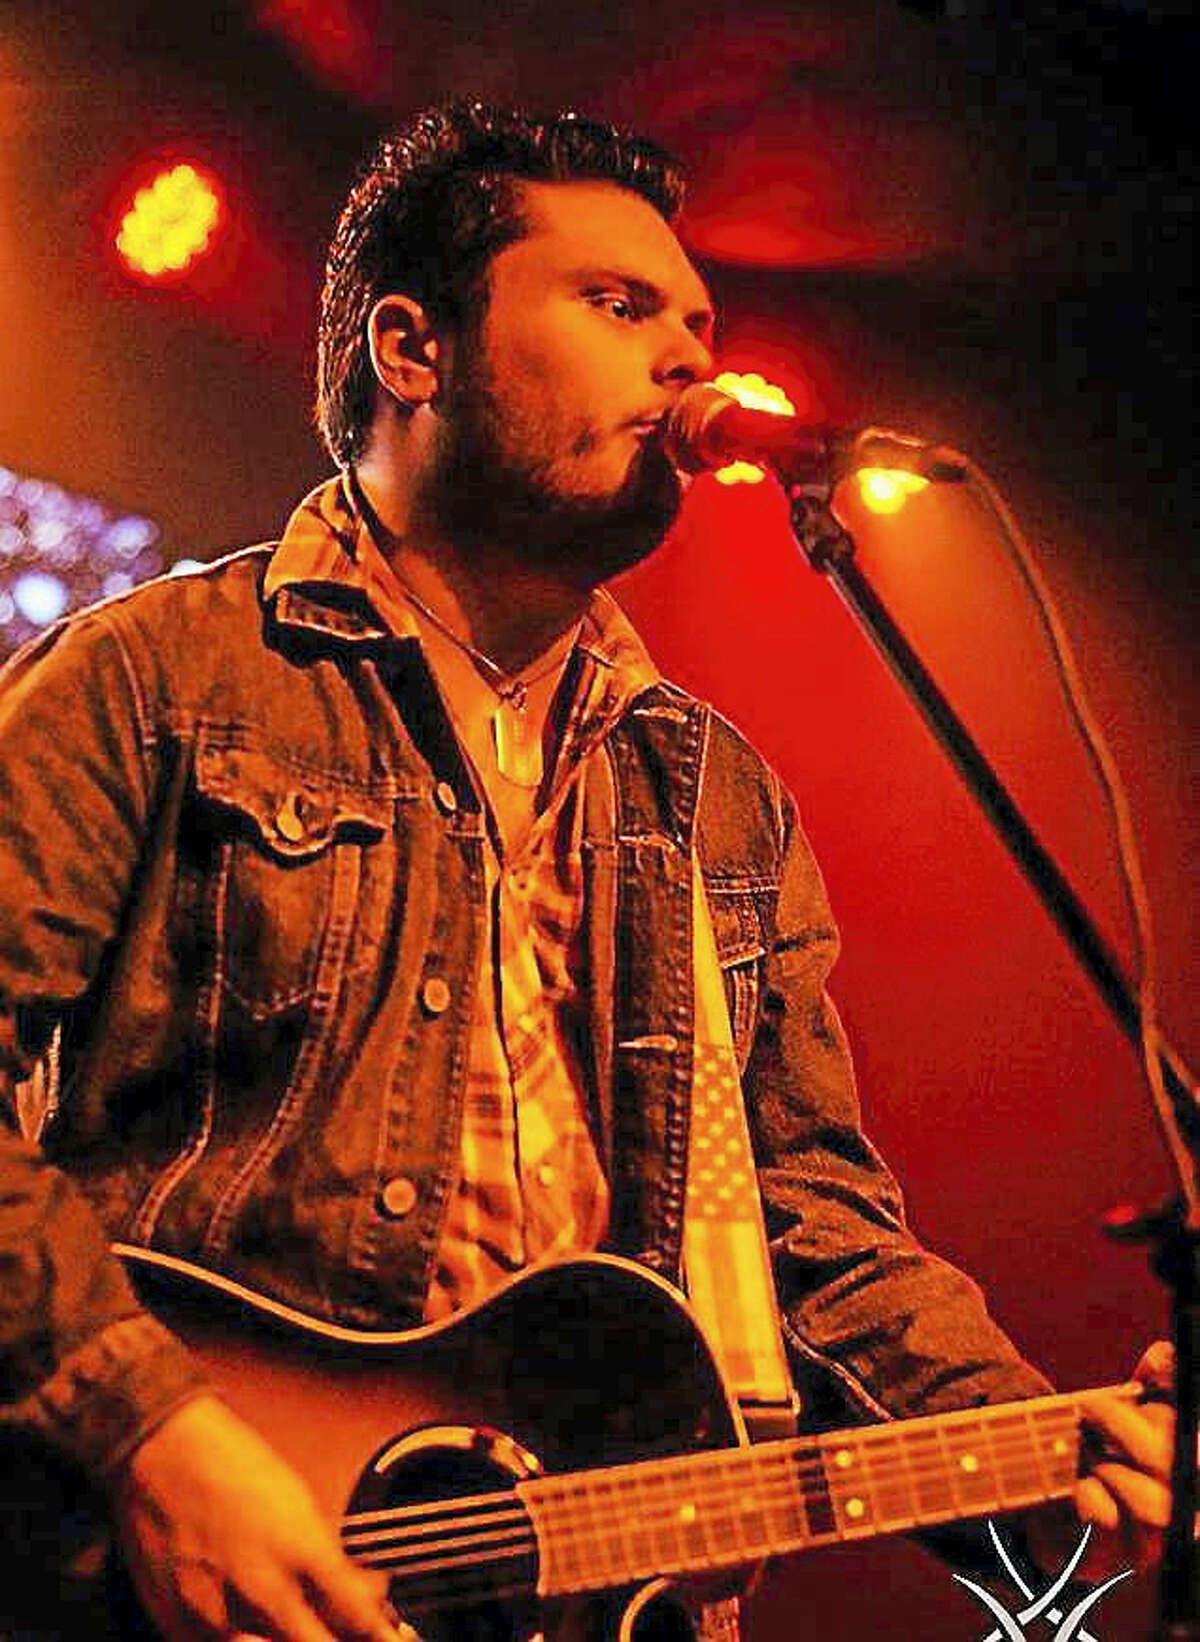 Contributed photo Torrington native Cody Wolfe, shown performing in 2016, recently signed with a record label. The singer is pursusing a country music career in Nashville, Tenn.